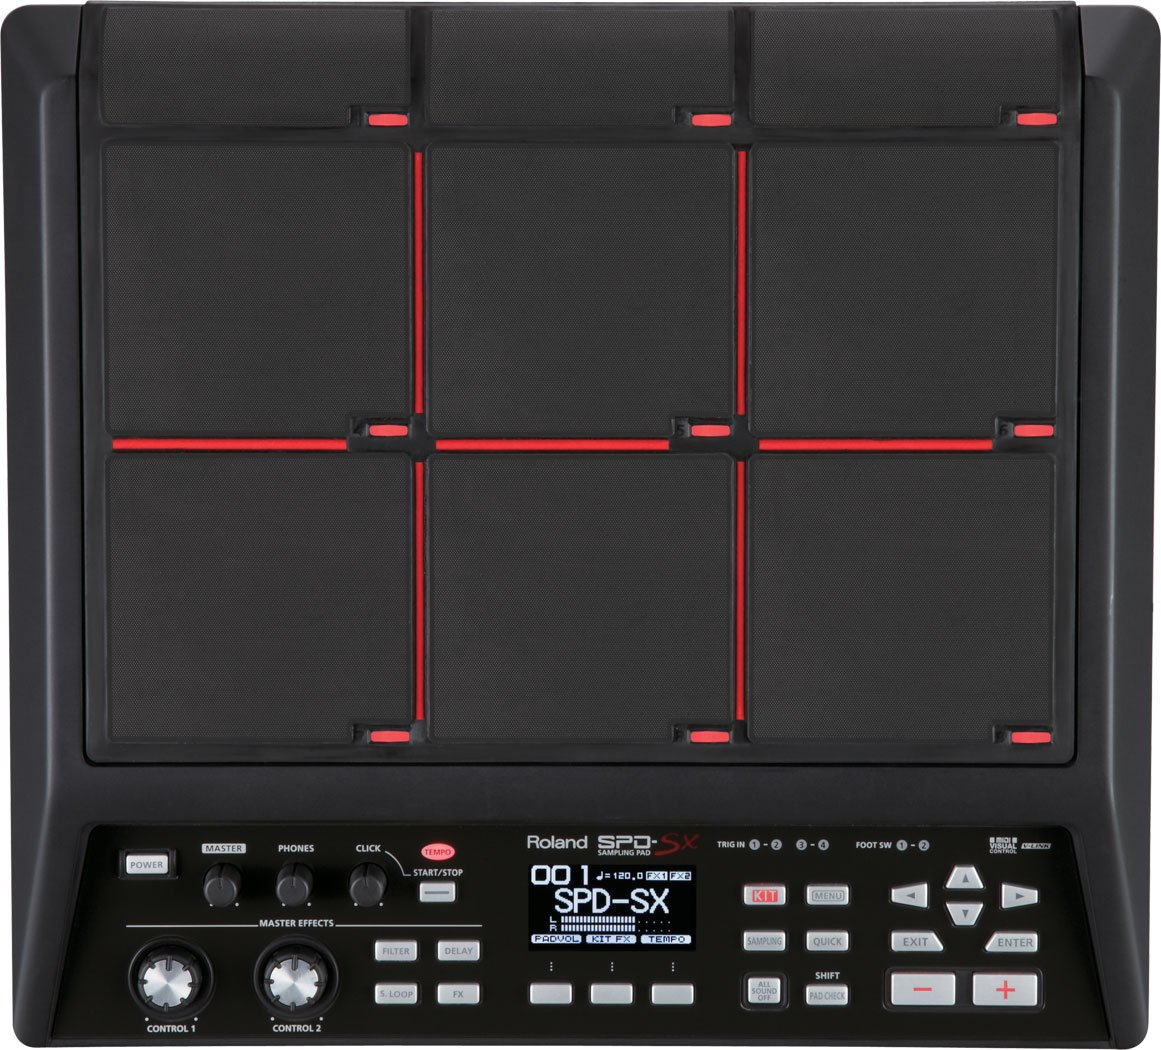 Roland Percussion Sampling Pad with 4GB Internal Memory, black (SPD-SX) by Roland